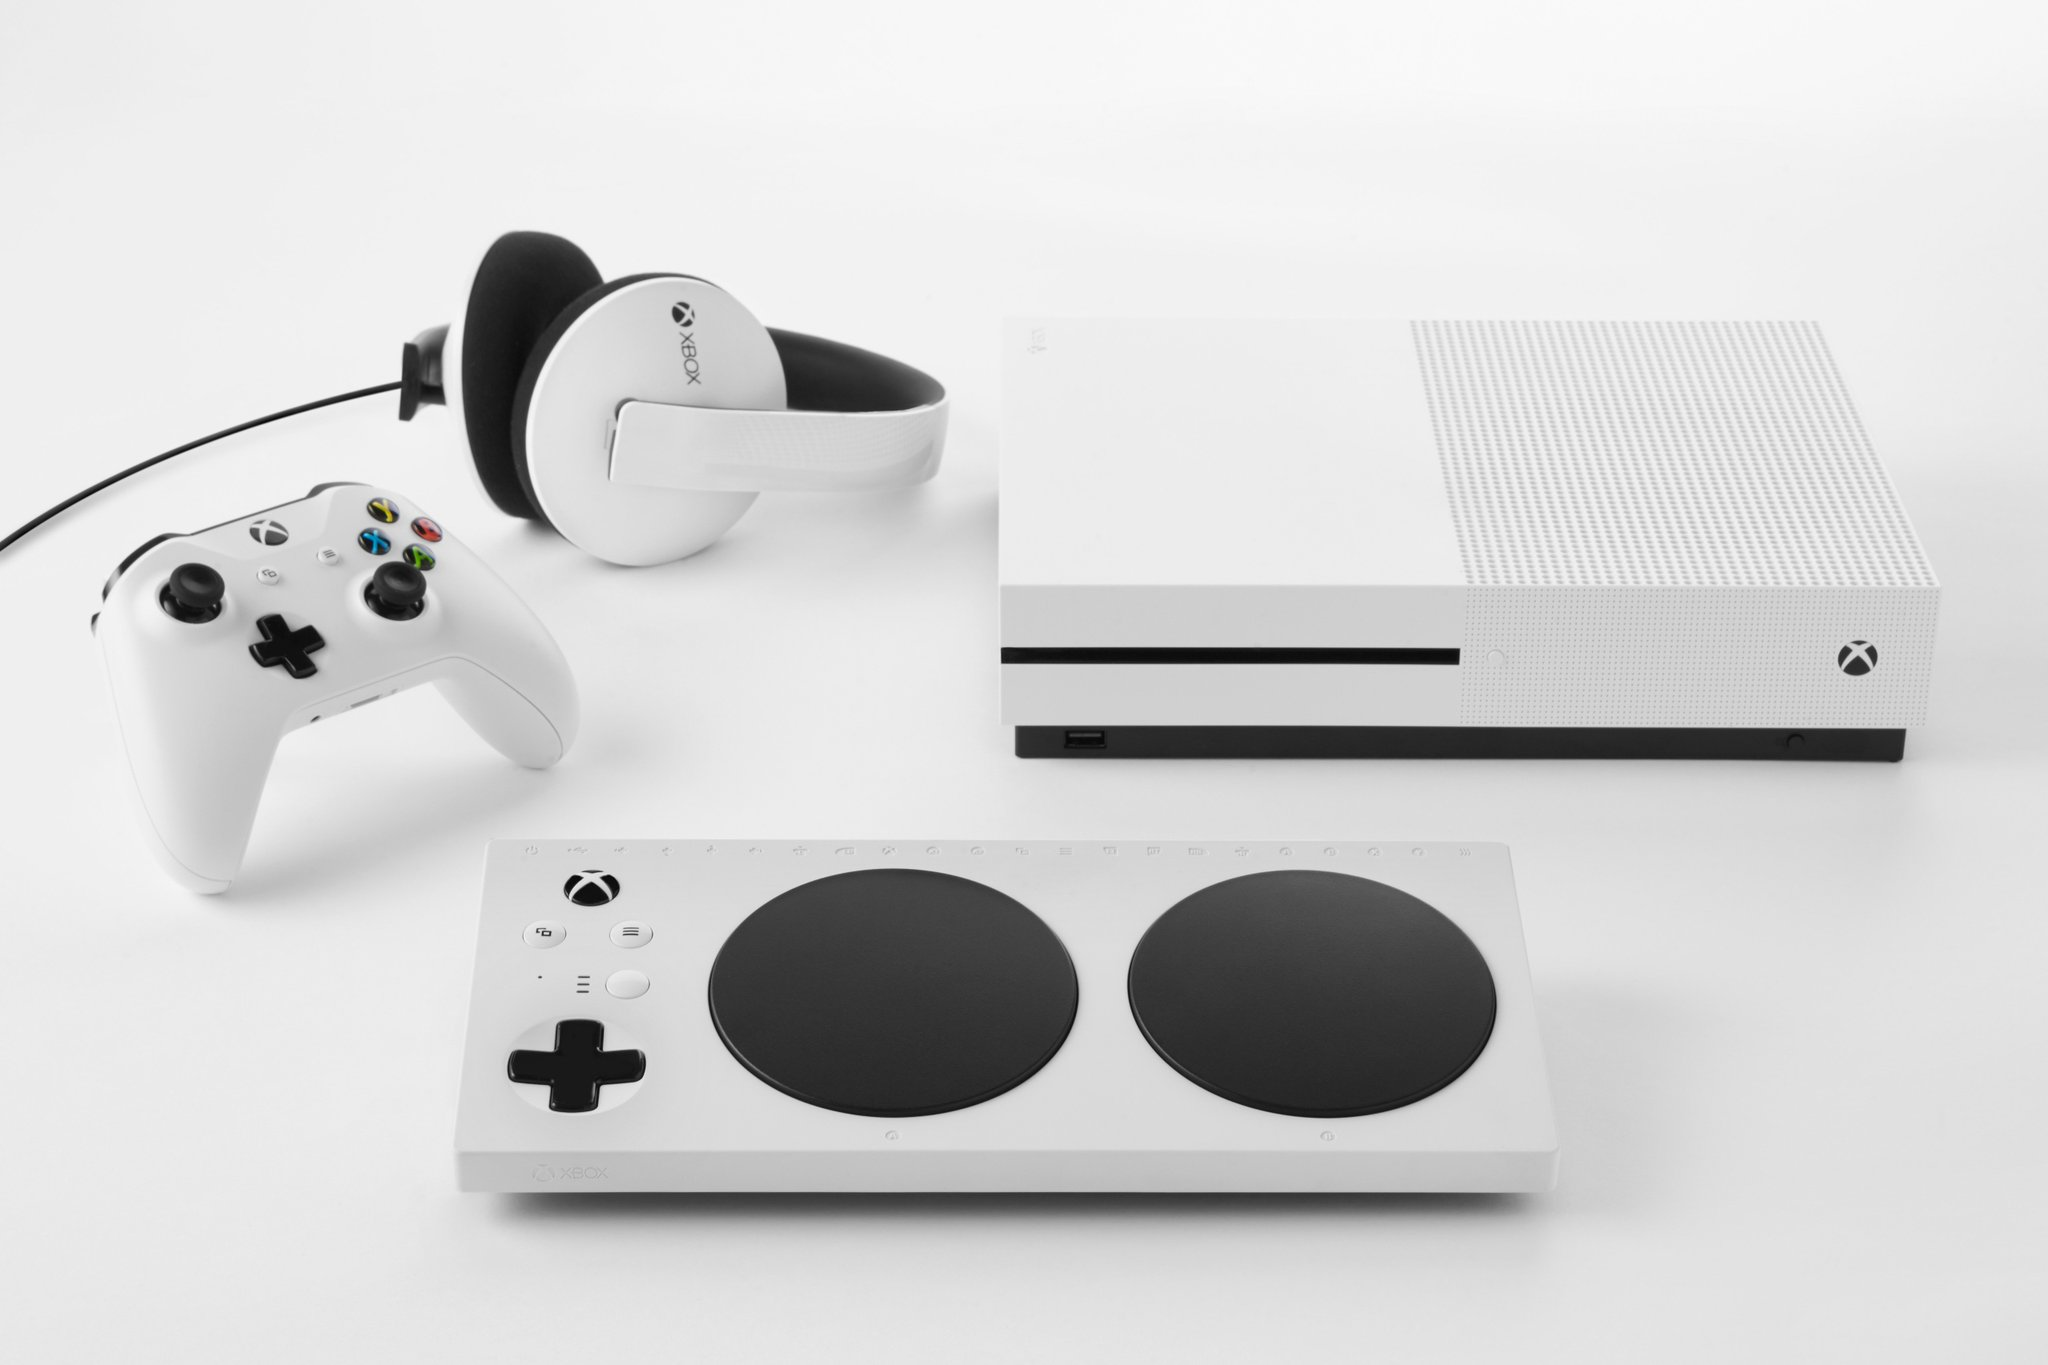 Xbox Adaptive Controller a 'first' for disabled gamers